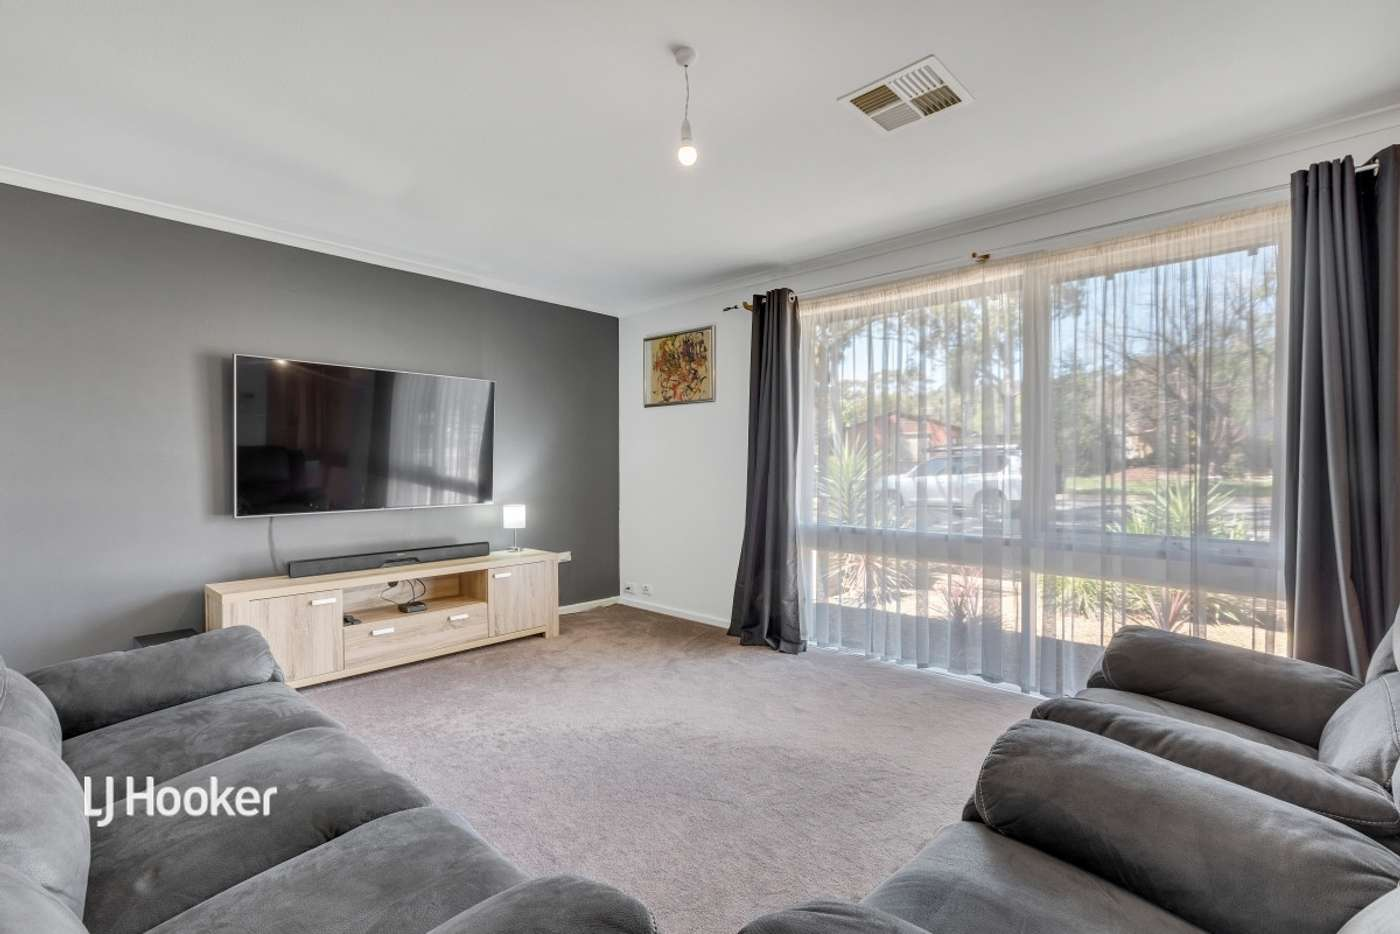 Fifth view of Homely house listing, 10 Hawker Crescent, Elizabeth East SA 5112